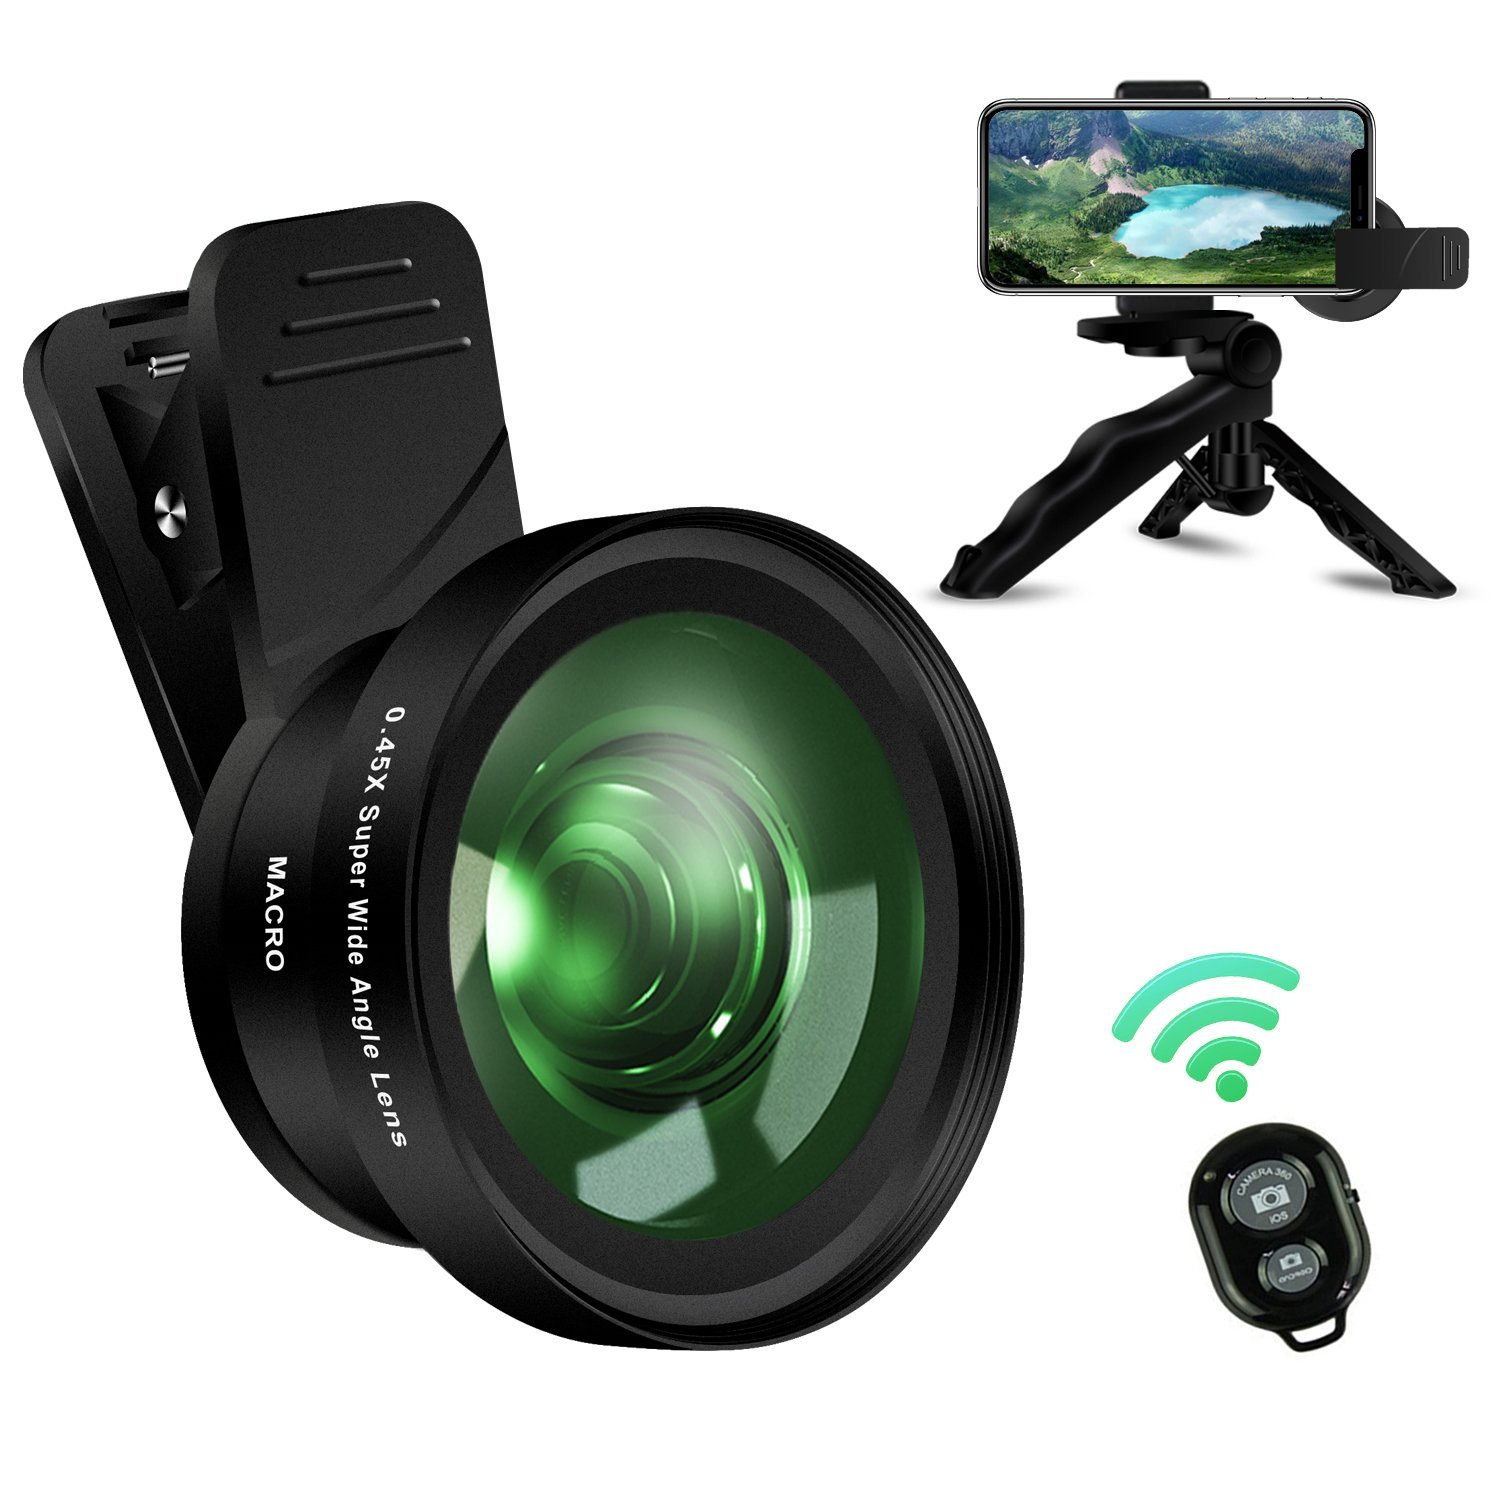 iPhone Camera Lens Kit,ANGFLY Cell Phone Camera Lens 0.45X Wide Angle lens + 15X Macro Lens with Remote Shutter Multi-use Tripod & Phone Holder and Universal Clip,for iPhone,Samgsung,GoPro